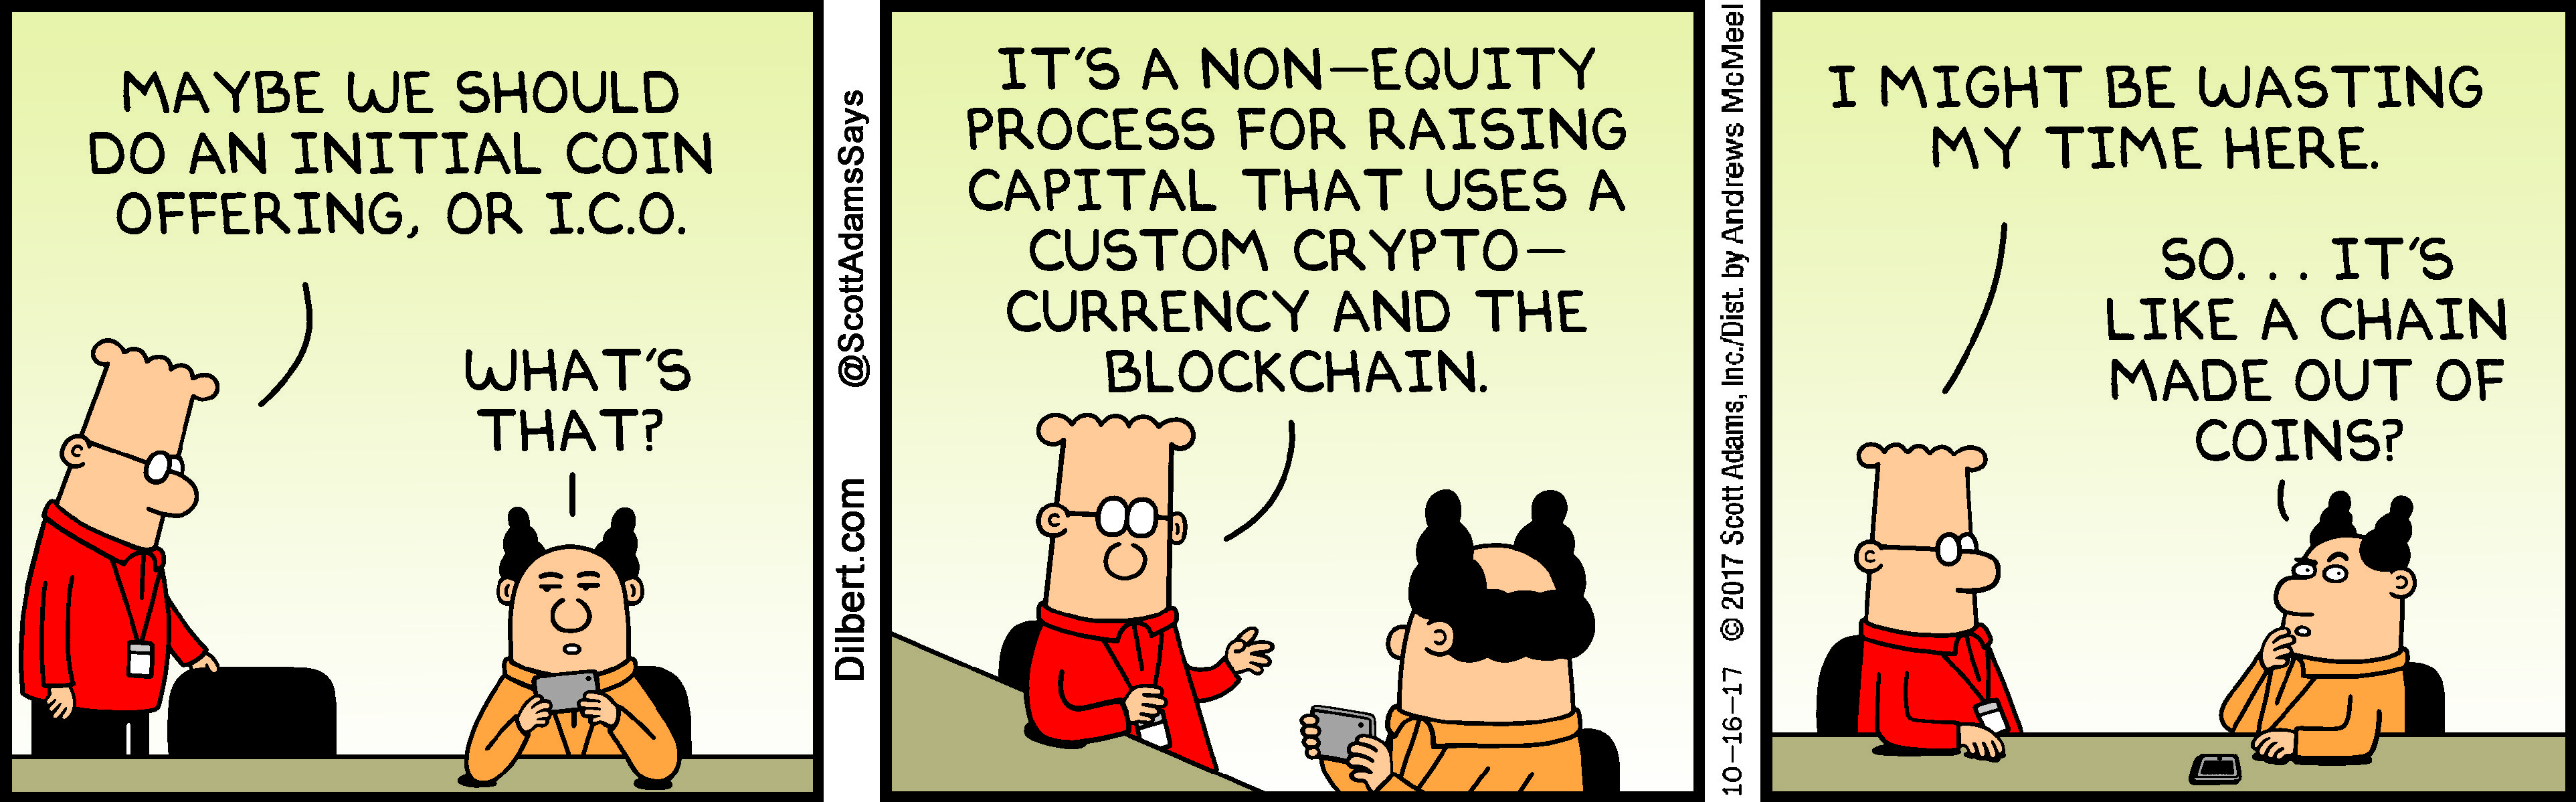 Dilbert Comic Strips Lampoon Blockchain and Initial Coin Offerings